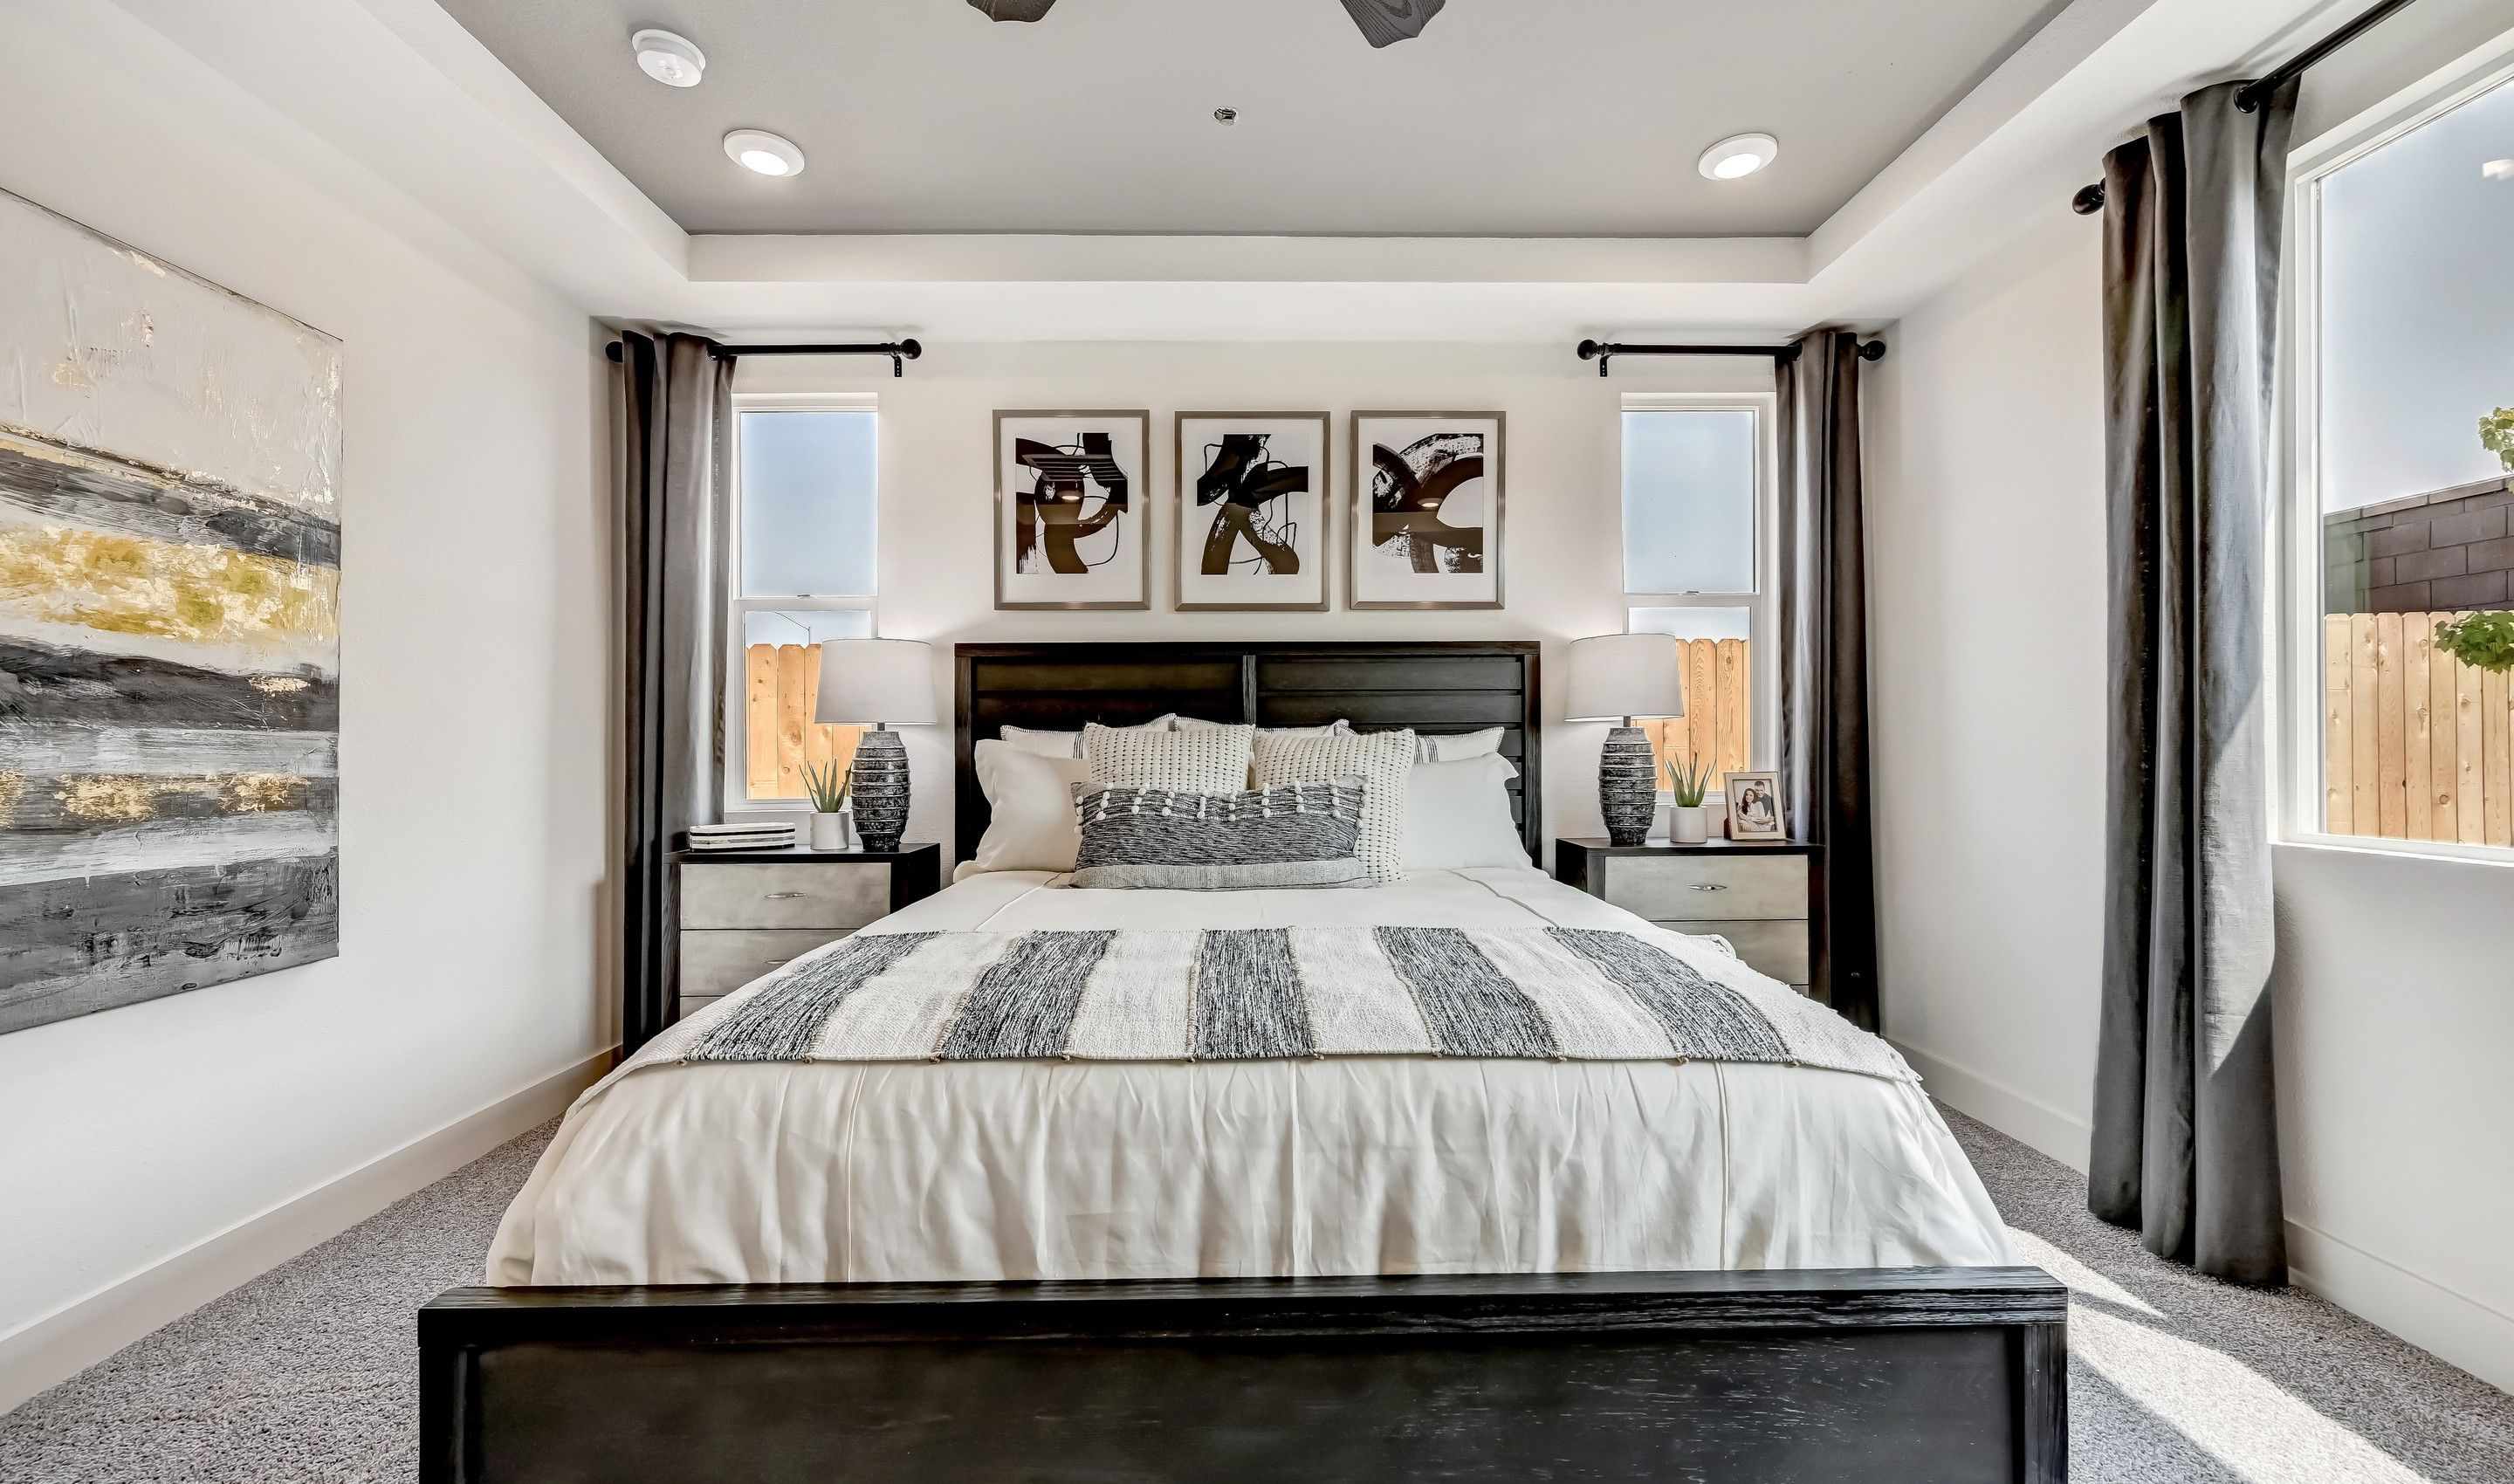 Bedroom featured in the Evergreen By K. Hovnanian® Homes in Stockton-Lodi, CA